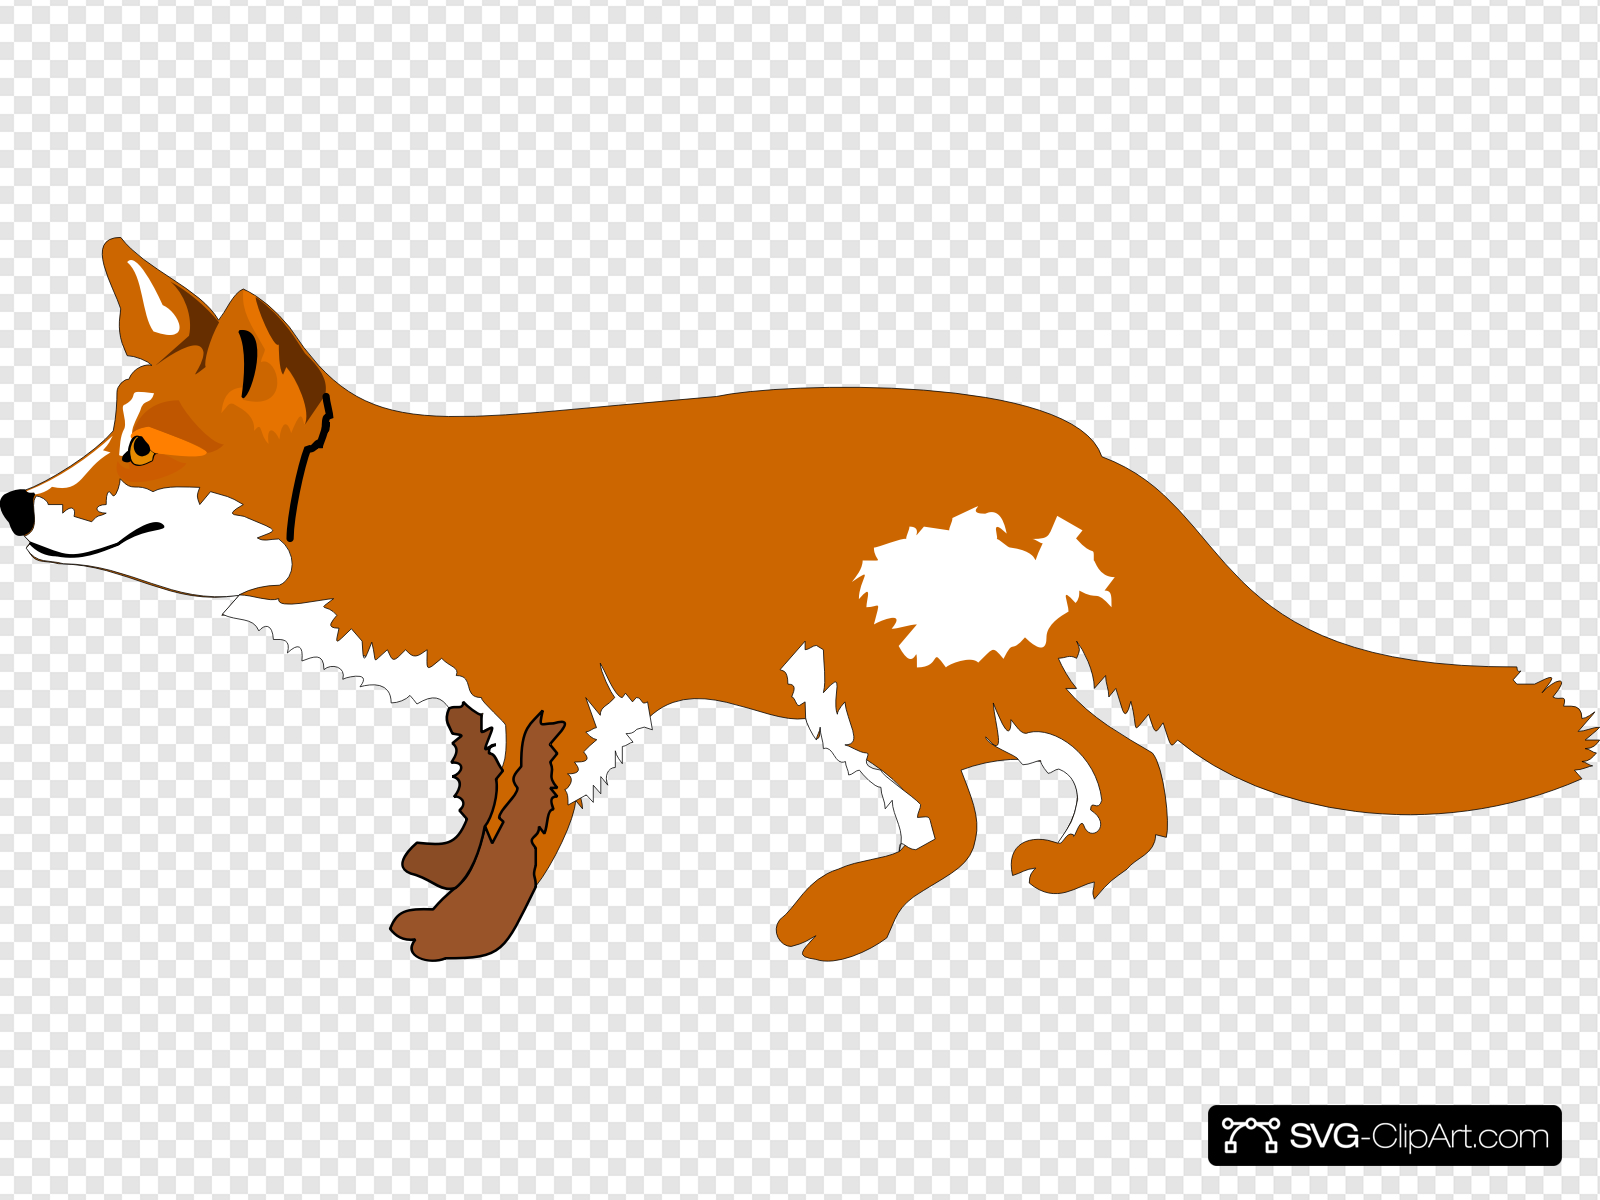 Fox Running Clip art, Icon and SVG.